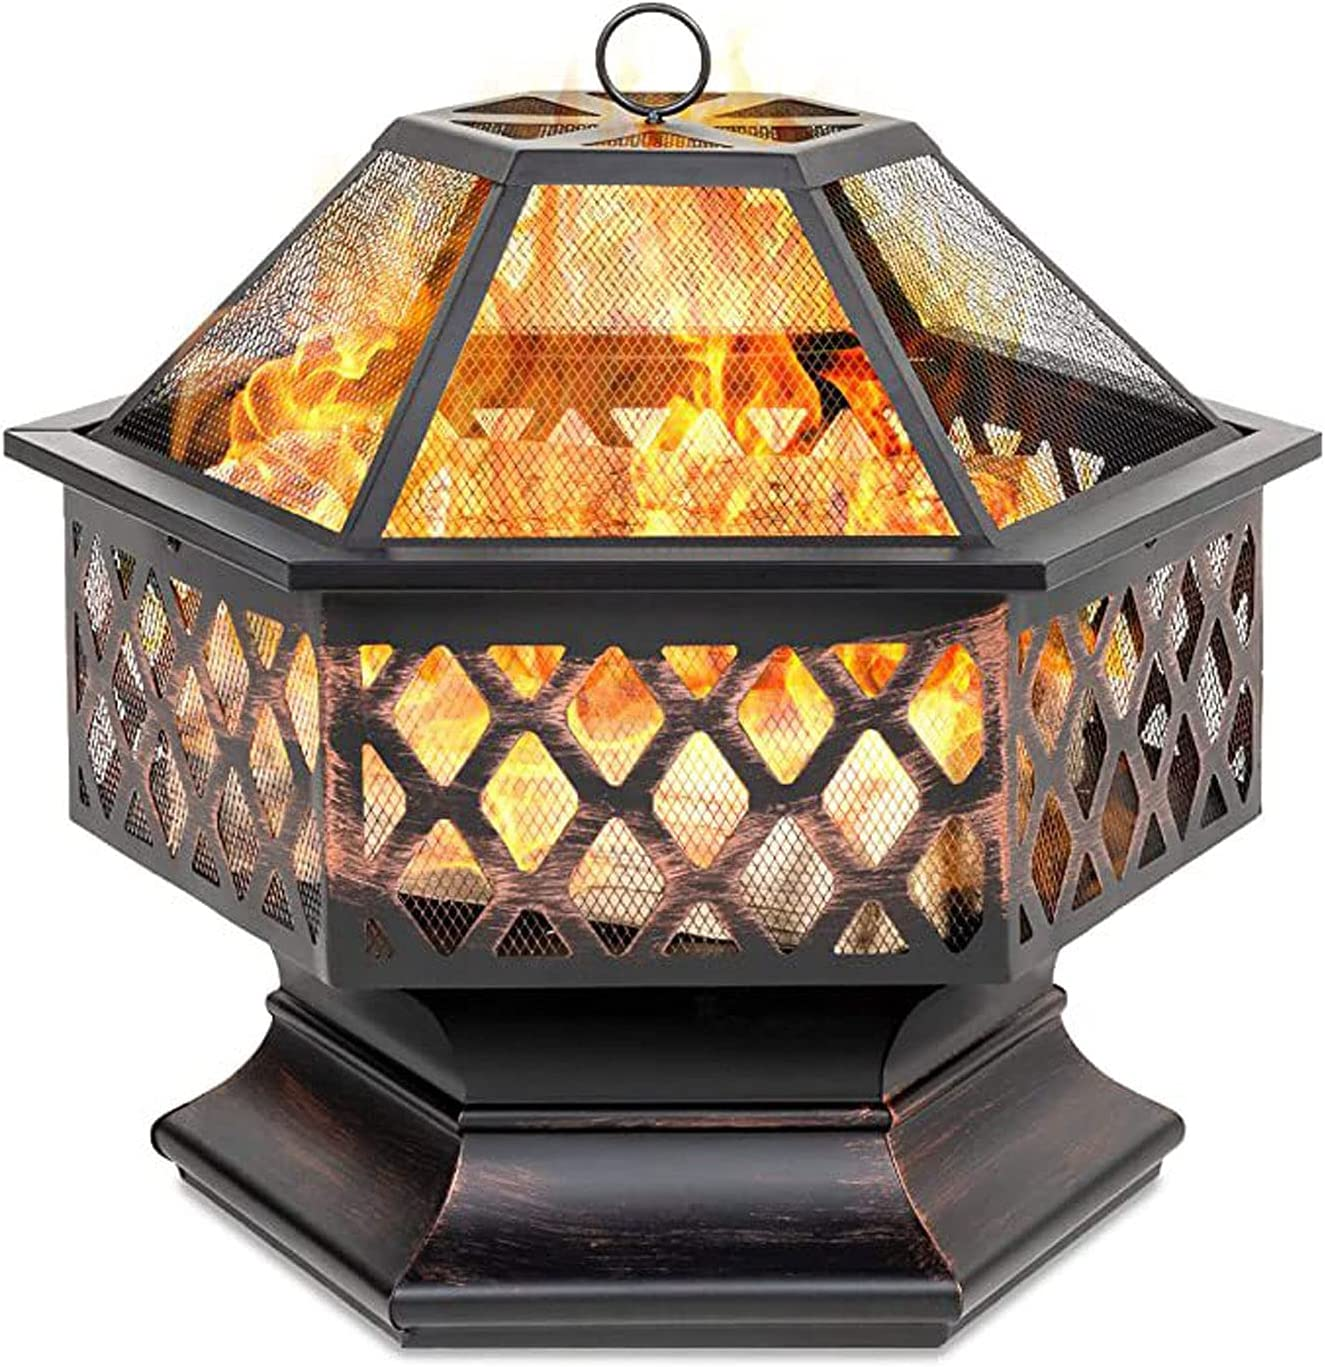 KYCD trust Wood Burning 2021 autumn and winter new Patio Firebowl Fire Large Pit Out